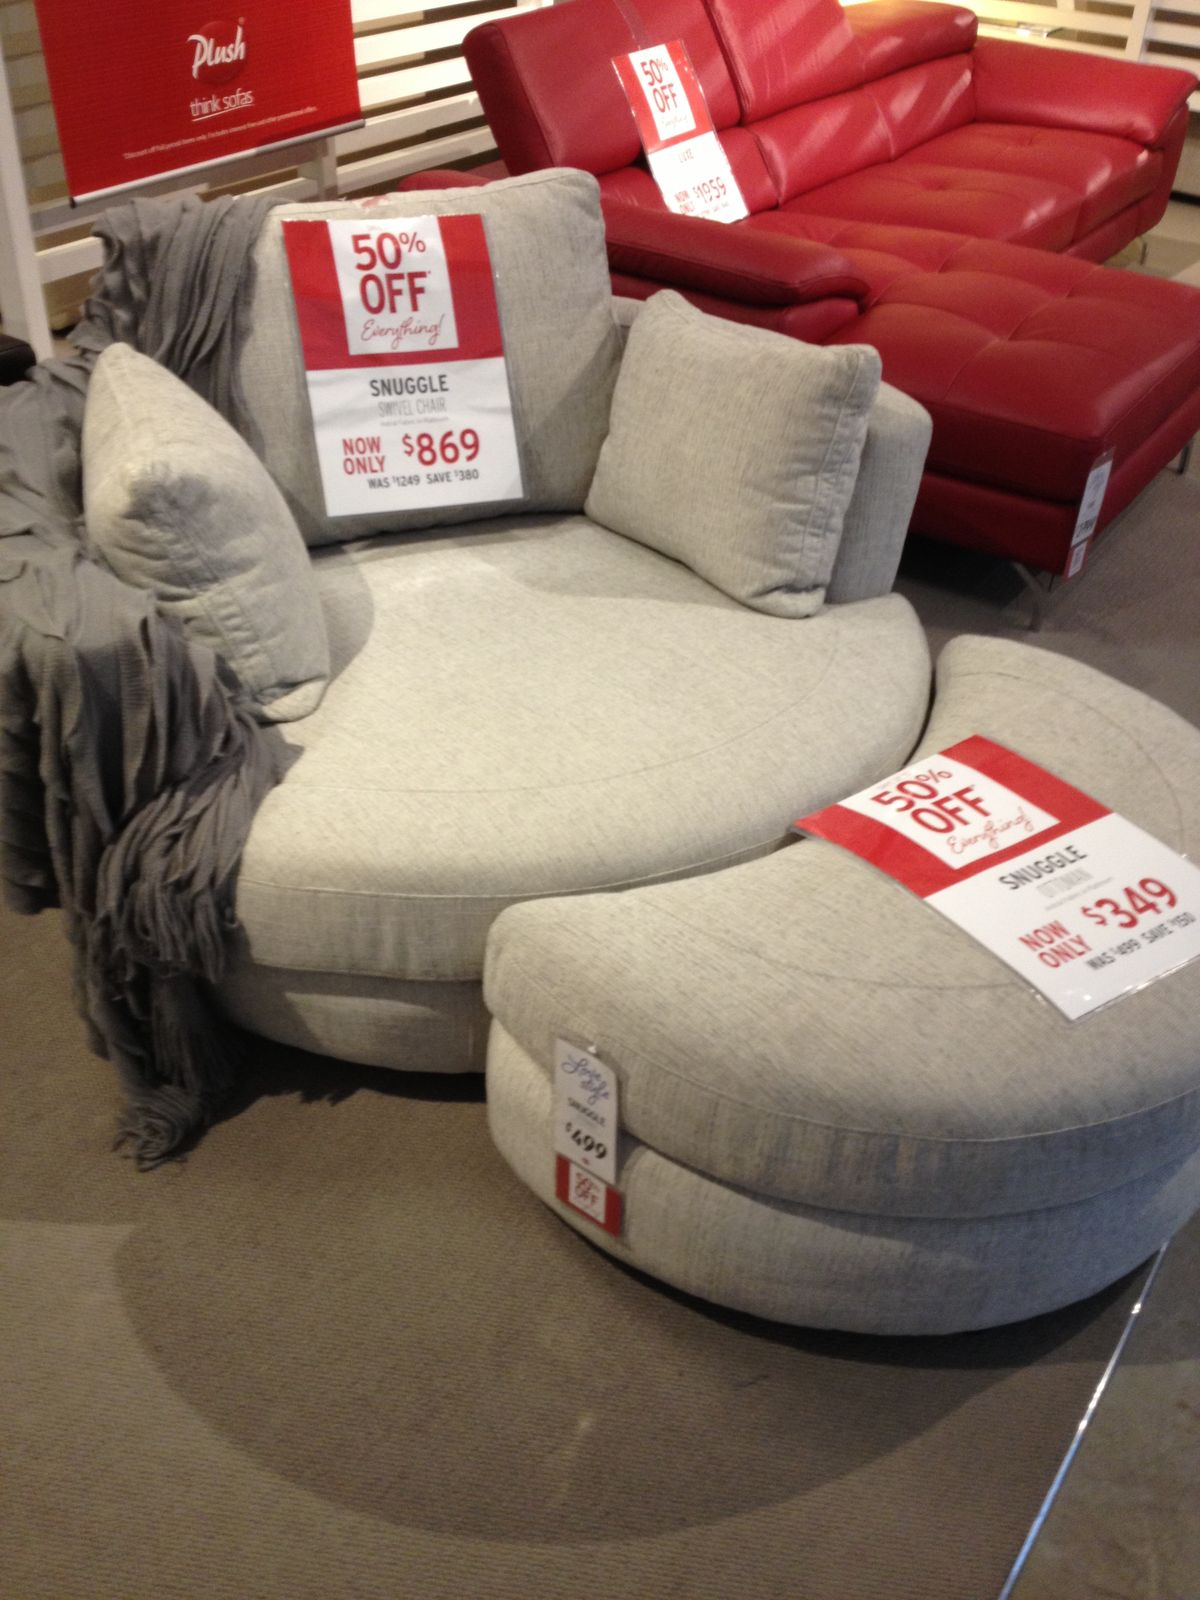 2 person oversized round cuddle chair